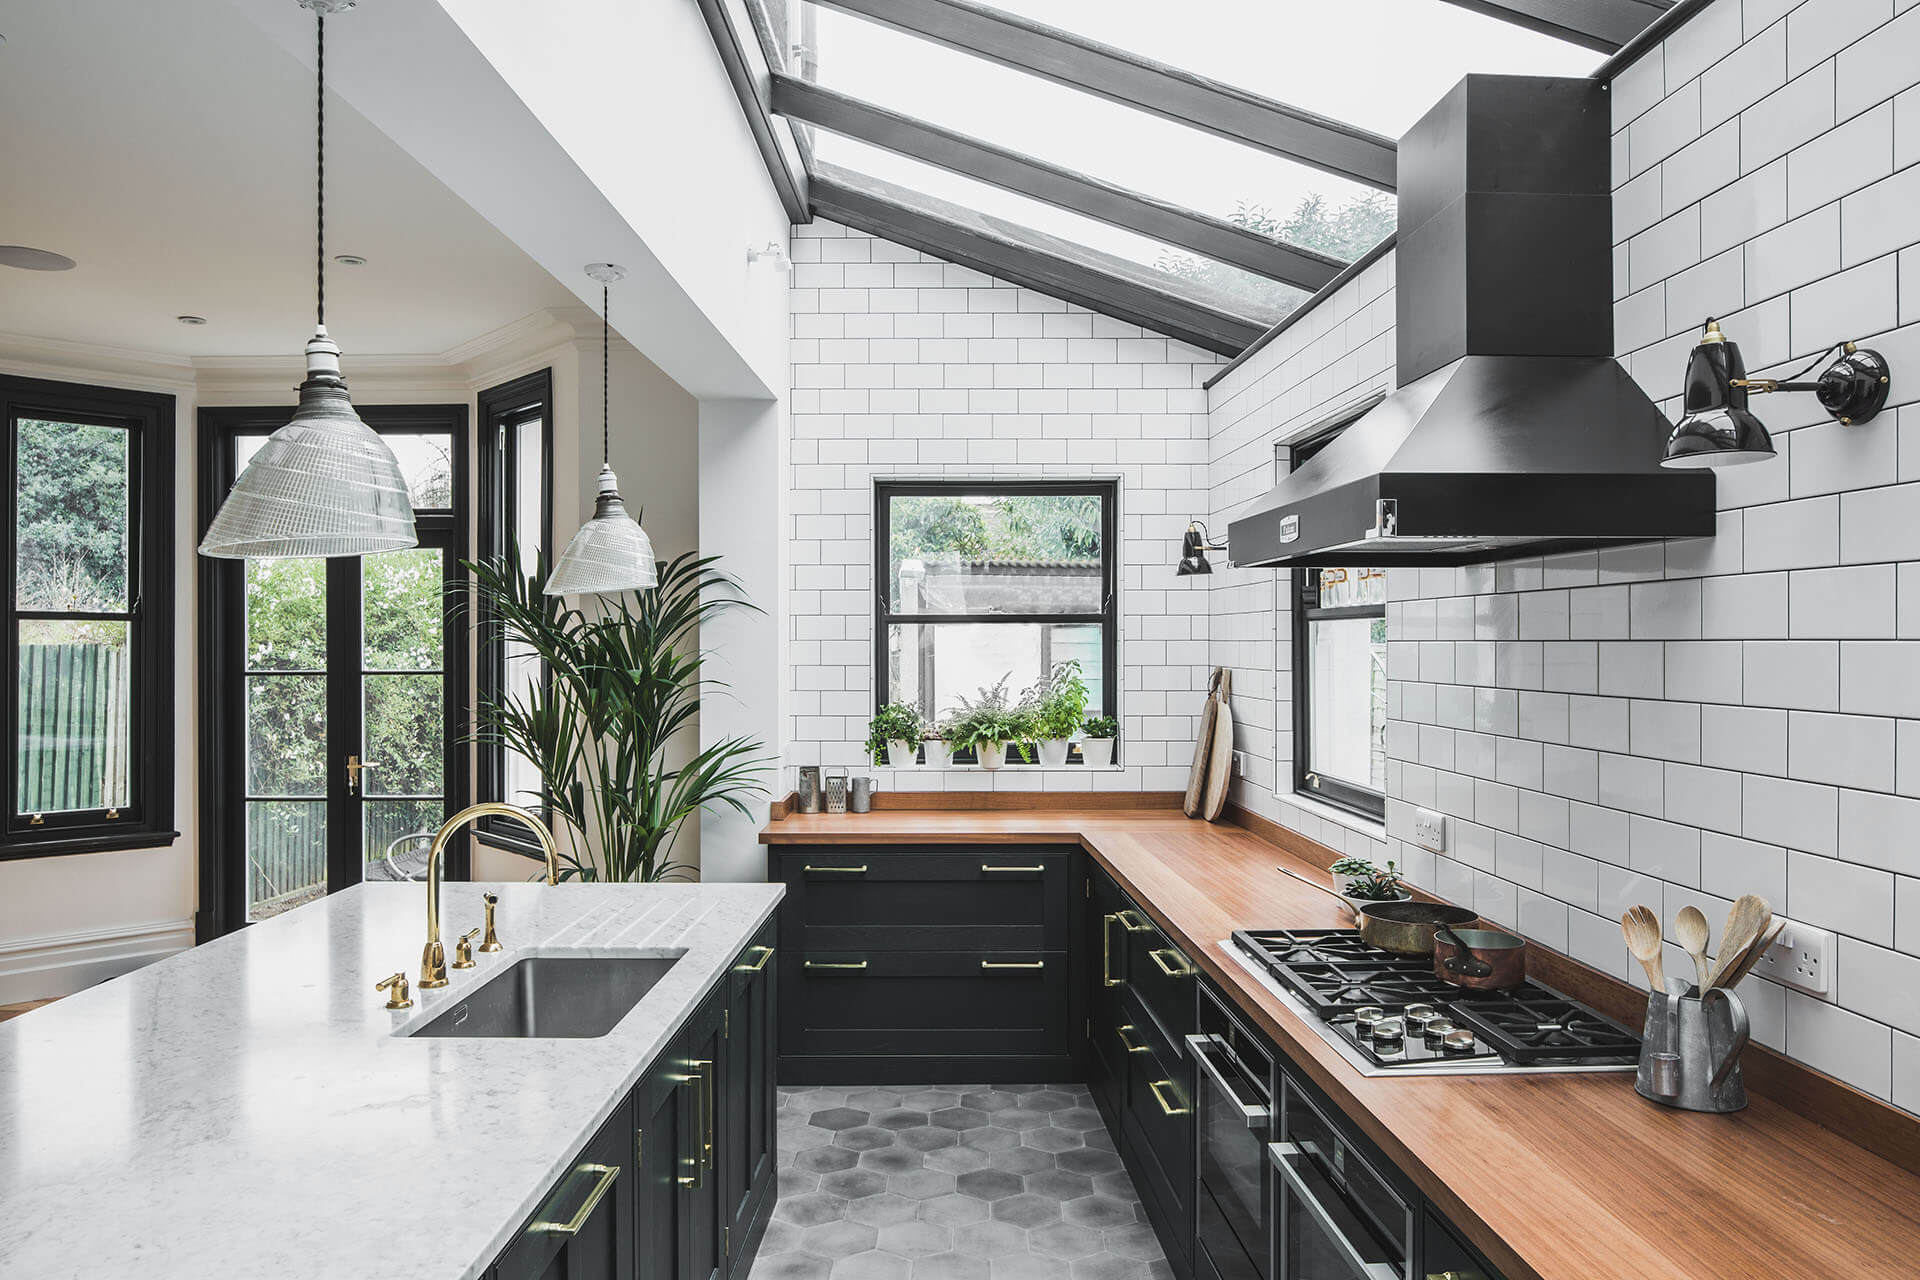 Dark Green Shaker kitchen with Island, PolishedBras Tap, Falon Hood, Wolf hob, handpainted in Obsidian Green (216) by Little Green with hexagonal concrete floor tiles